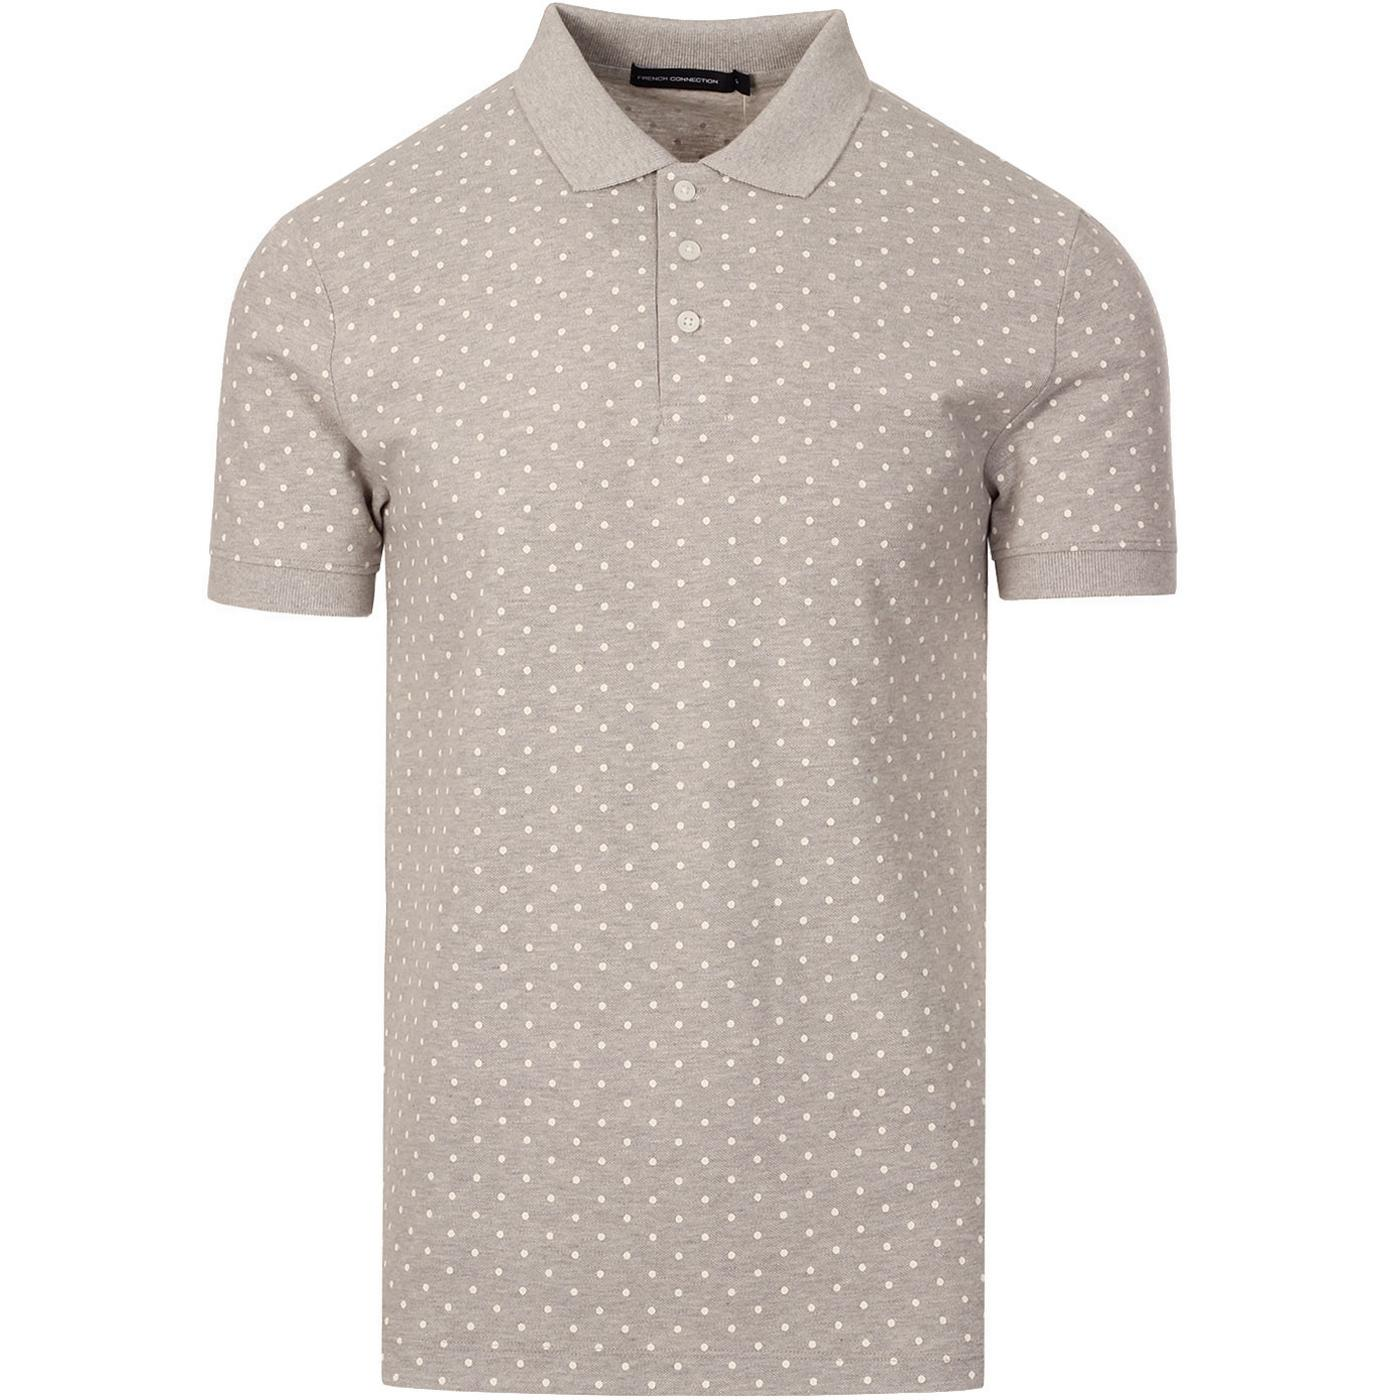 FRENCH CONNECTION Sixties Mod Polka Dot Pique Polo